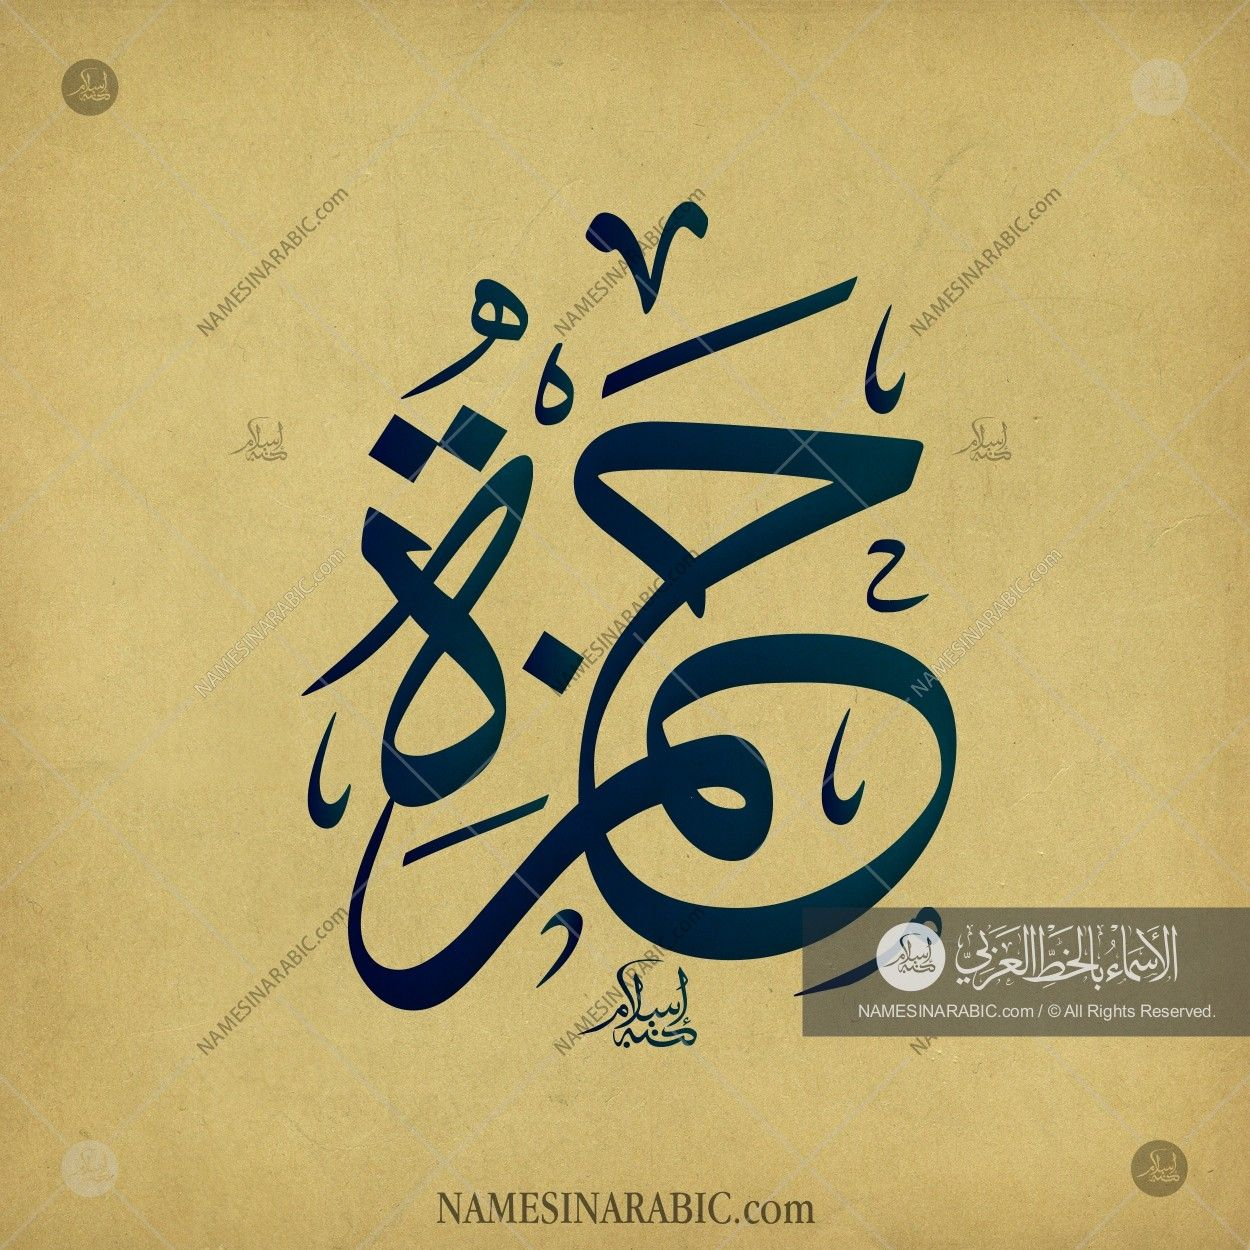 Hamza حمزة Names In Arabic Calligraphy Name 3630 Calligraphy Words Calligraphy Name Arabic Calligraphy